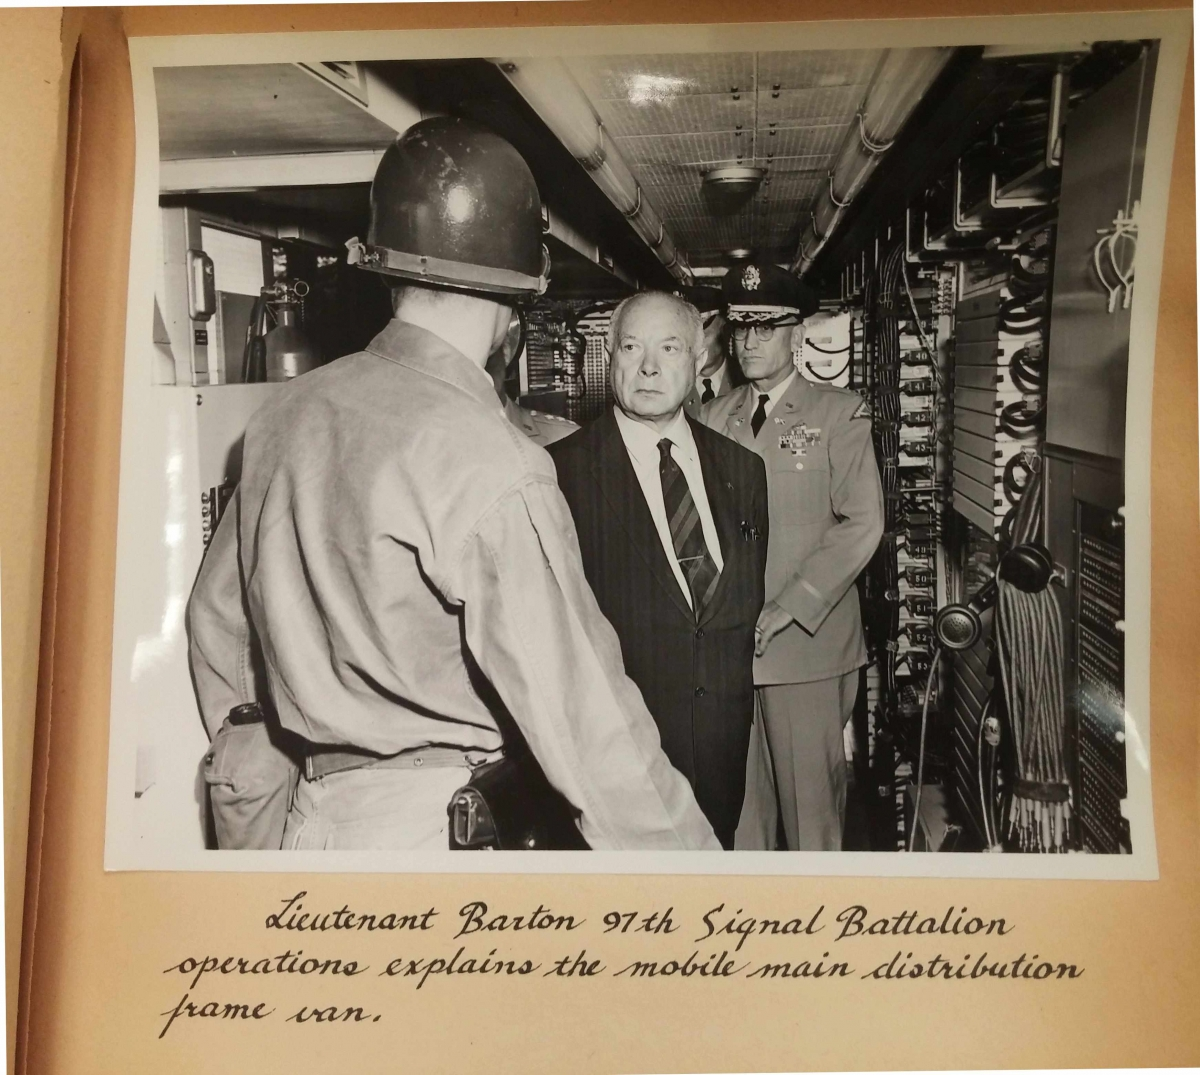 Sarnoff visiting the signal battalion operations